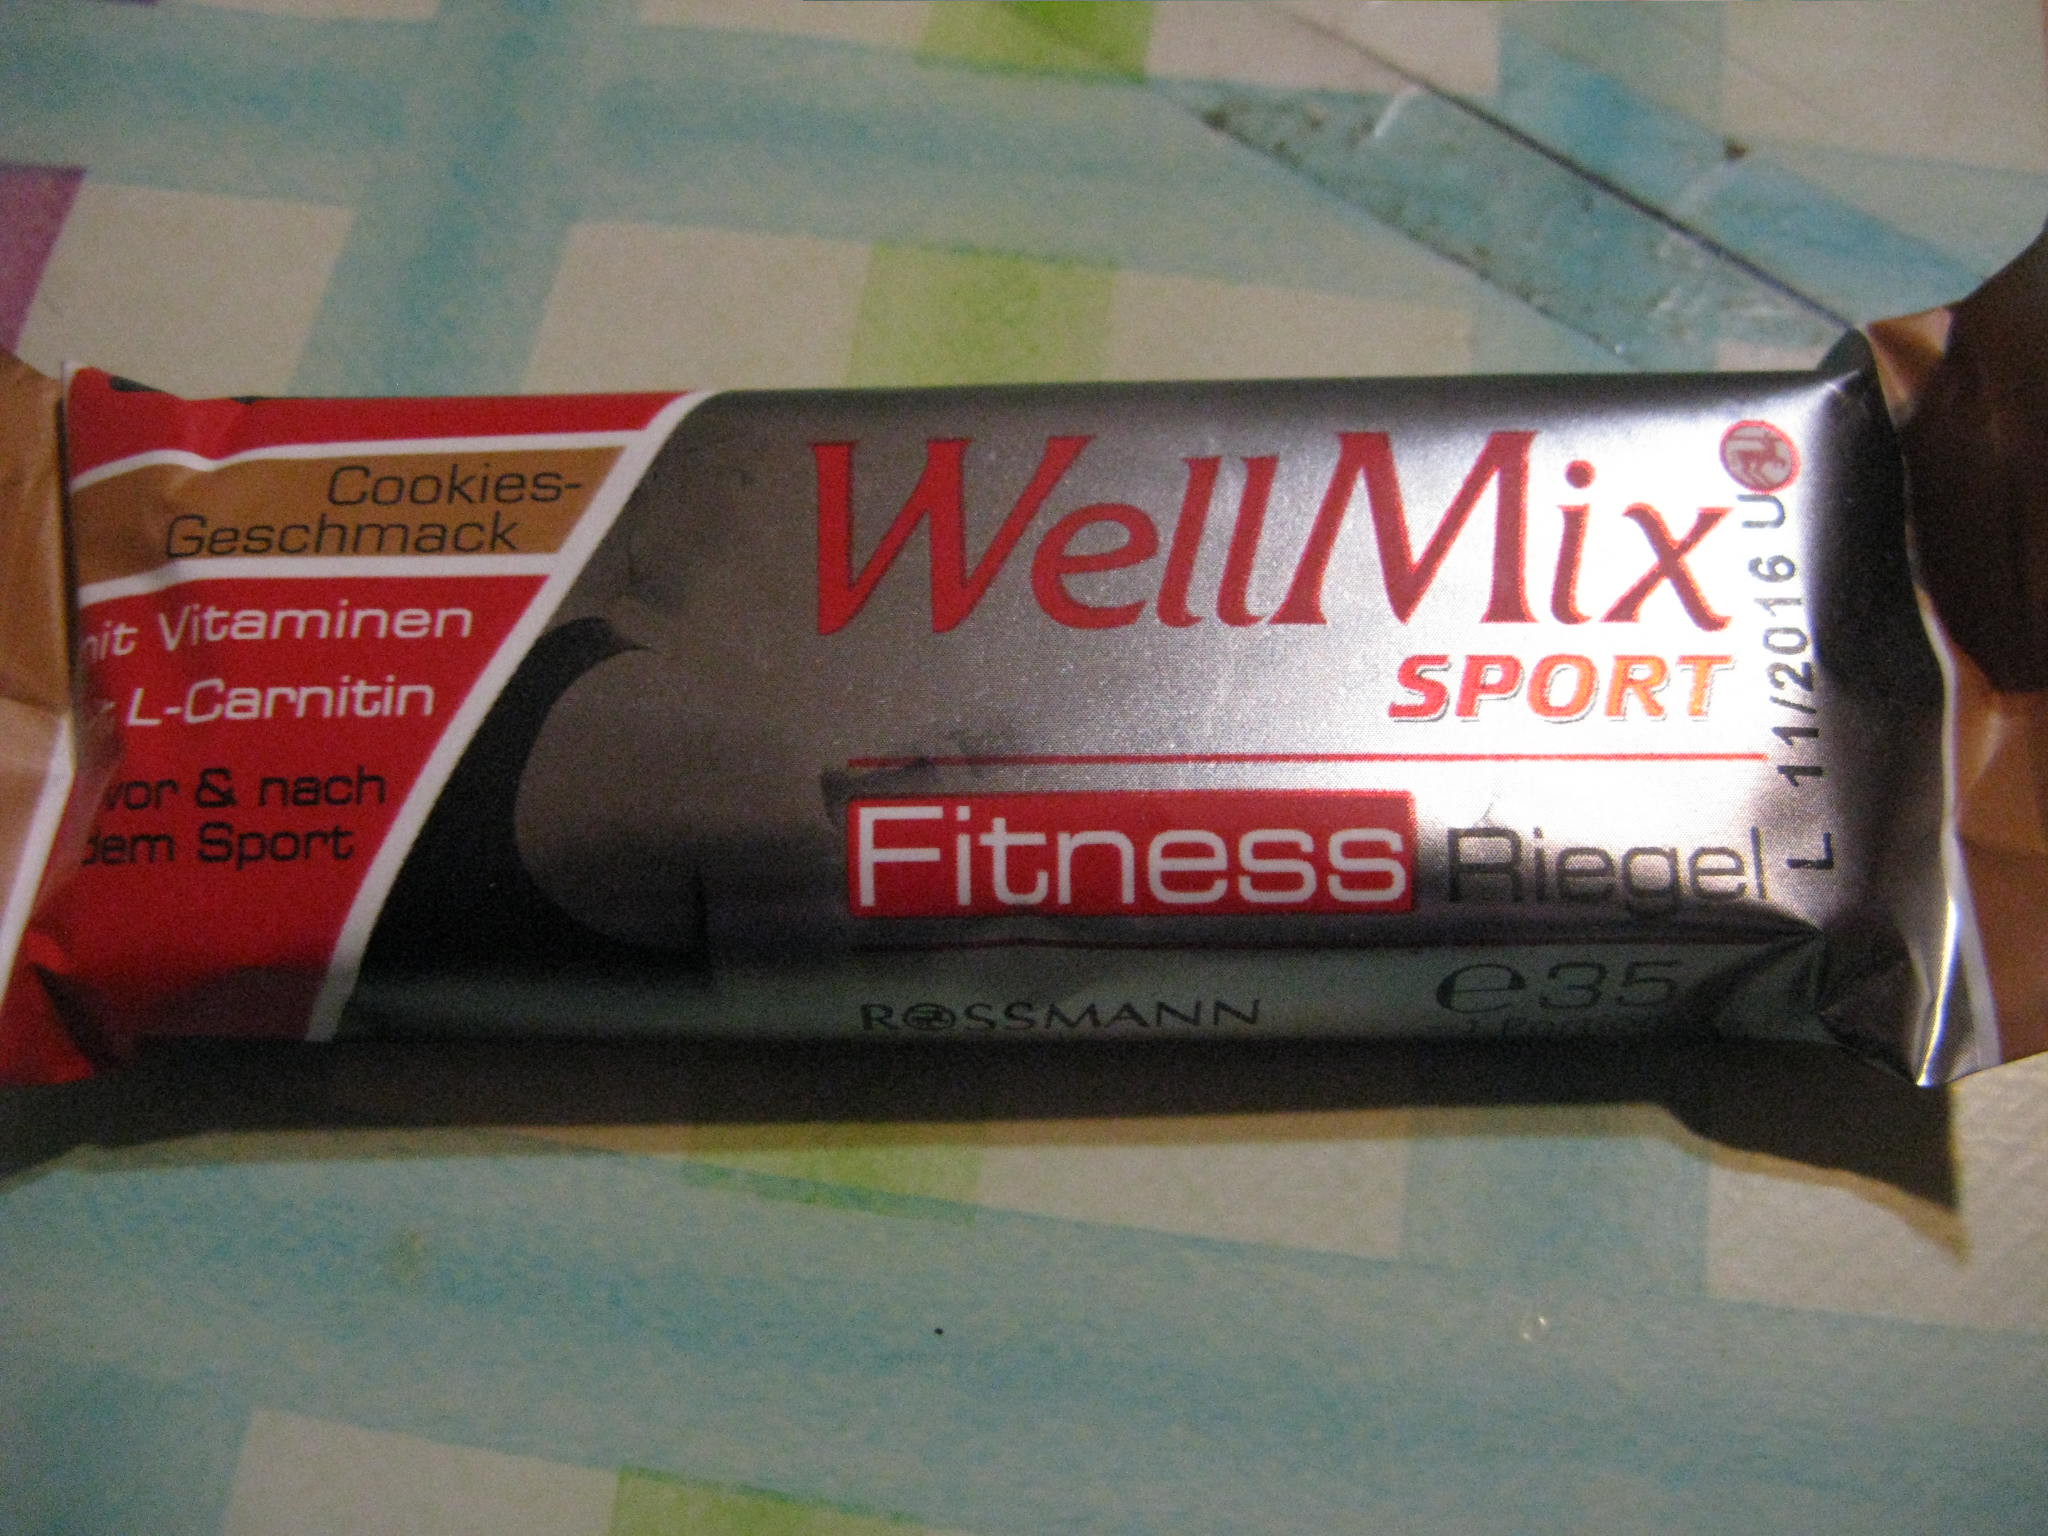 Well MIx Sport Fitness Riegel